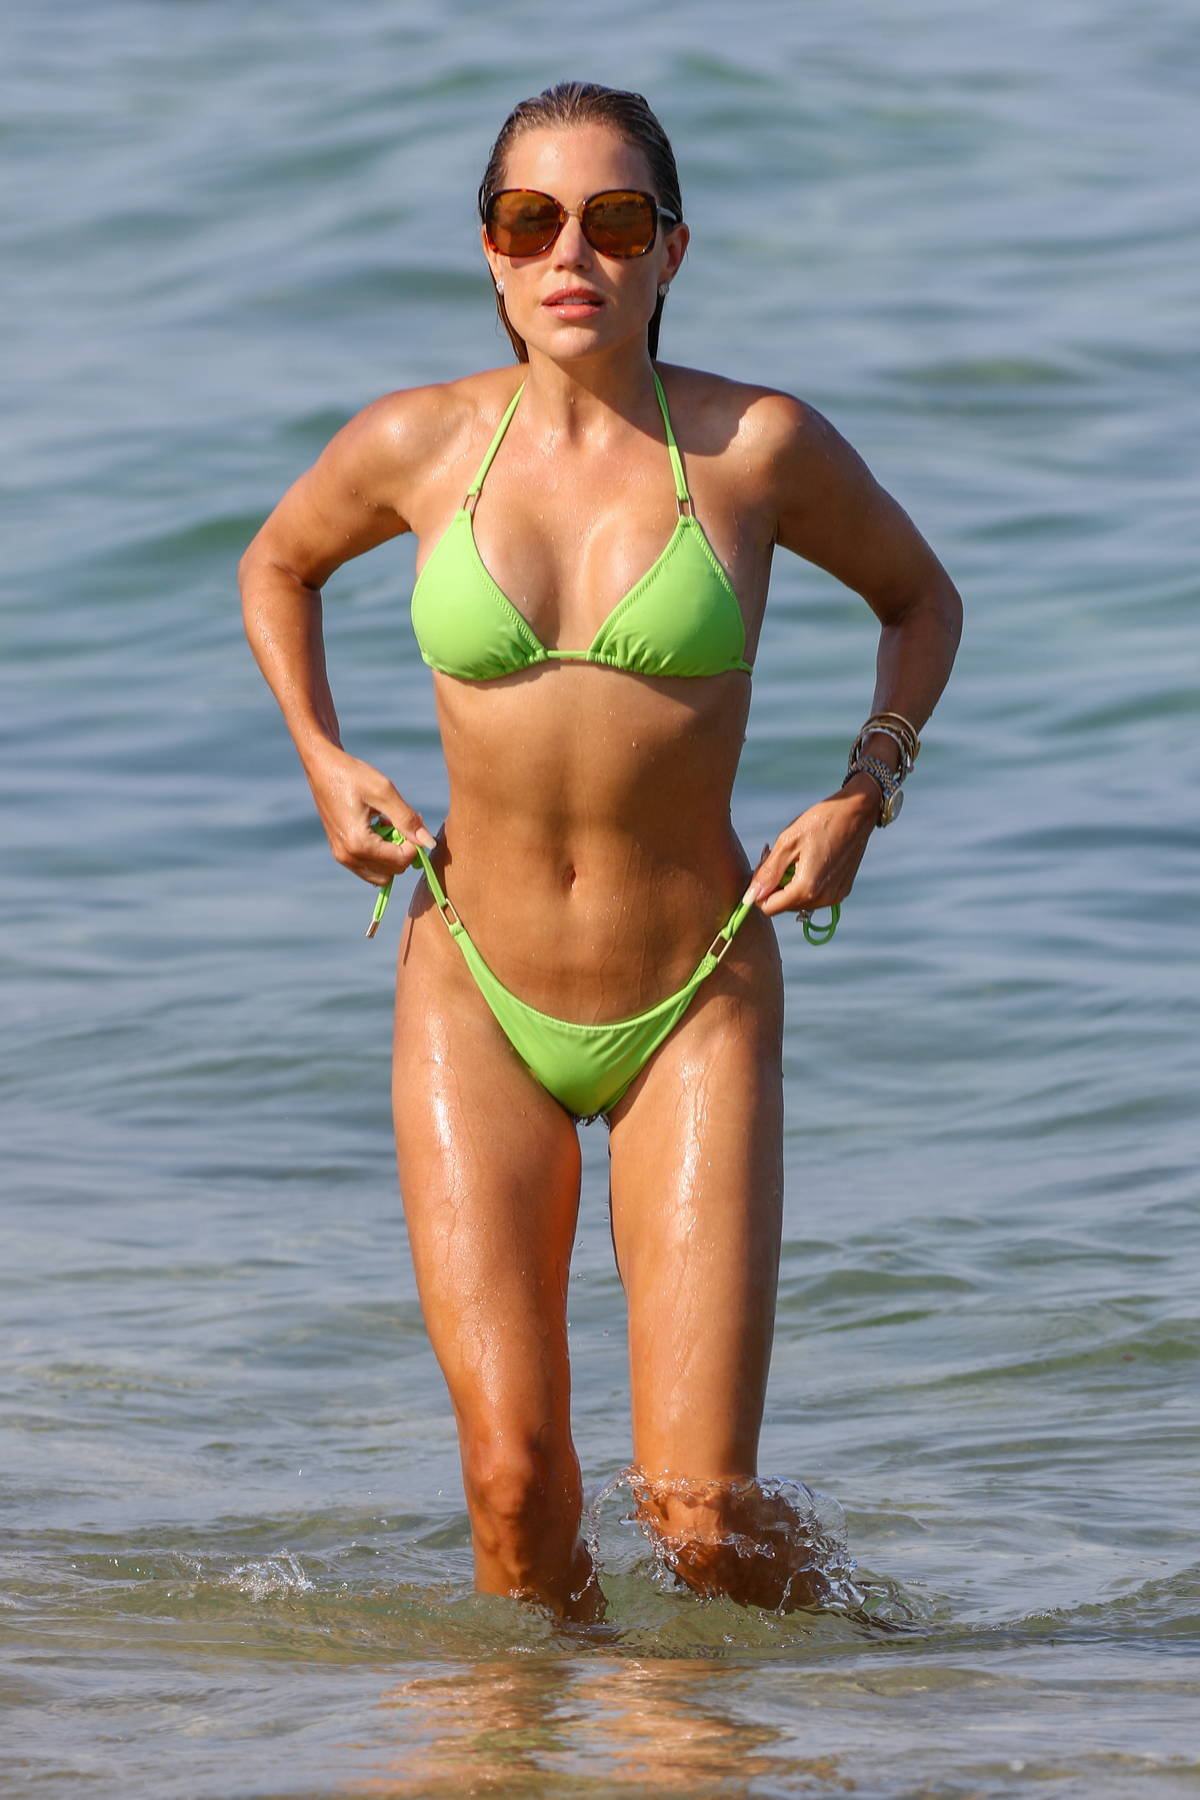 Sylvie Meis sizzles in a green bikini while enjoying another beach day with husband Niclas Castello in Saint-Tropez, France